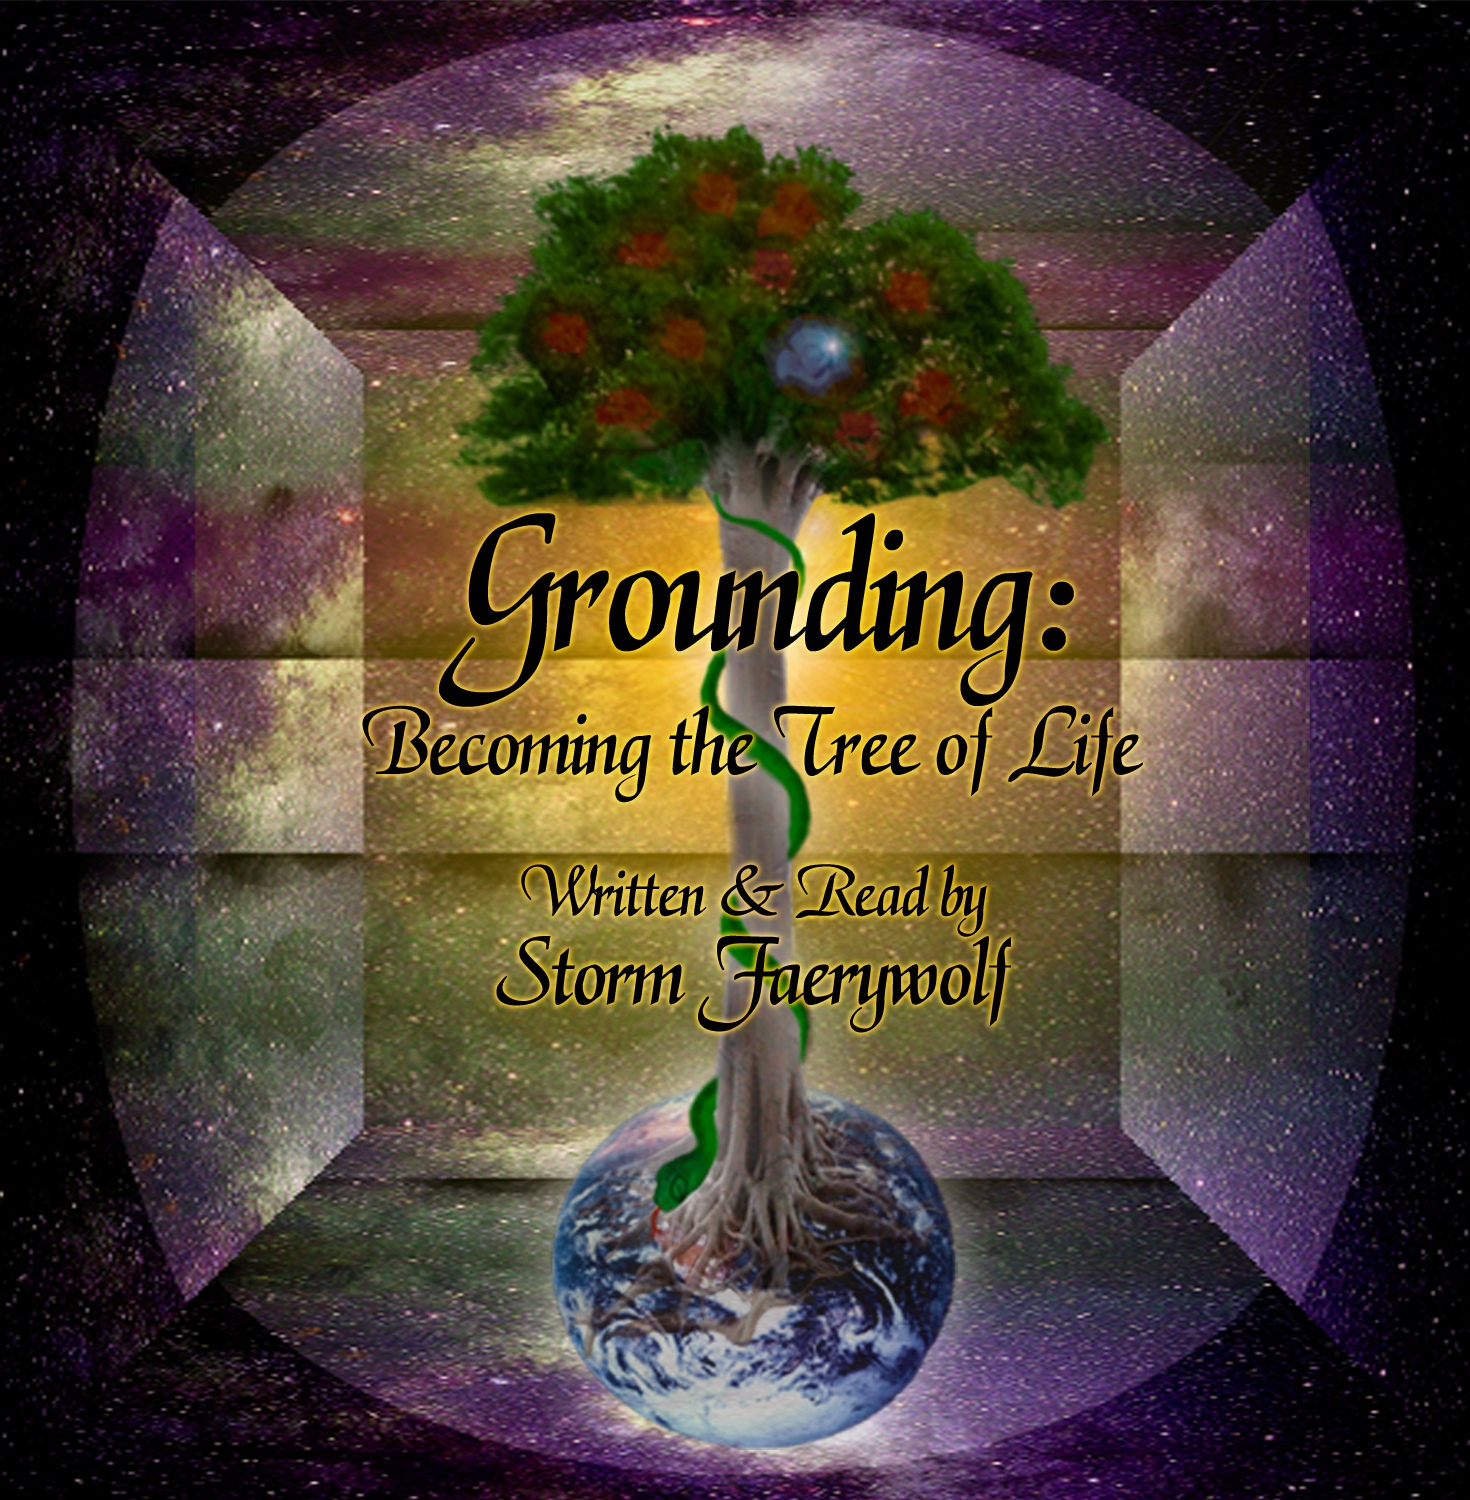 Get my Grounding meditation at 100% off!